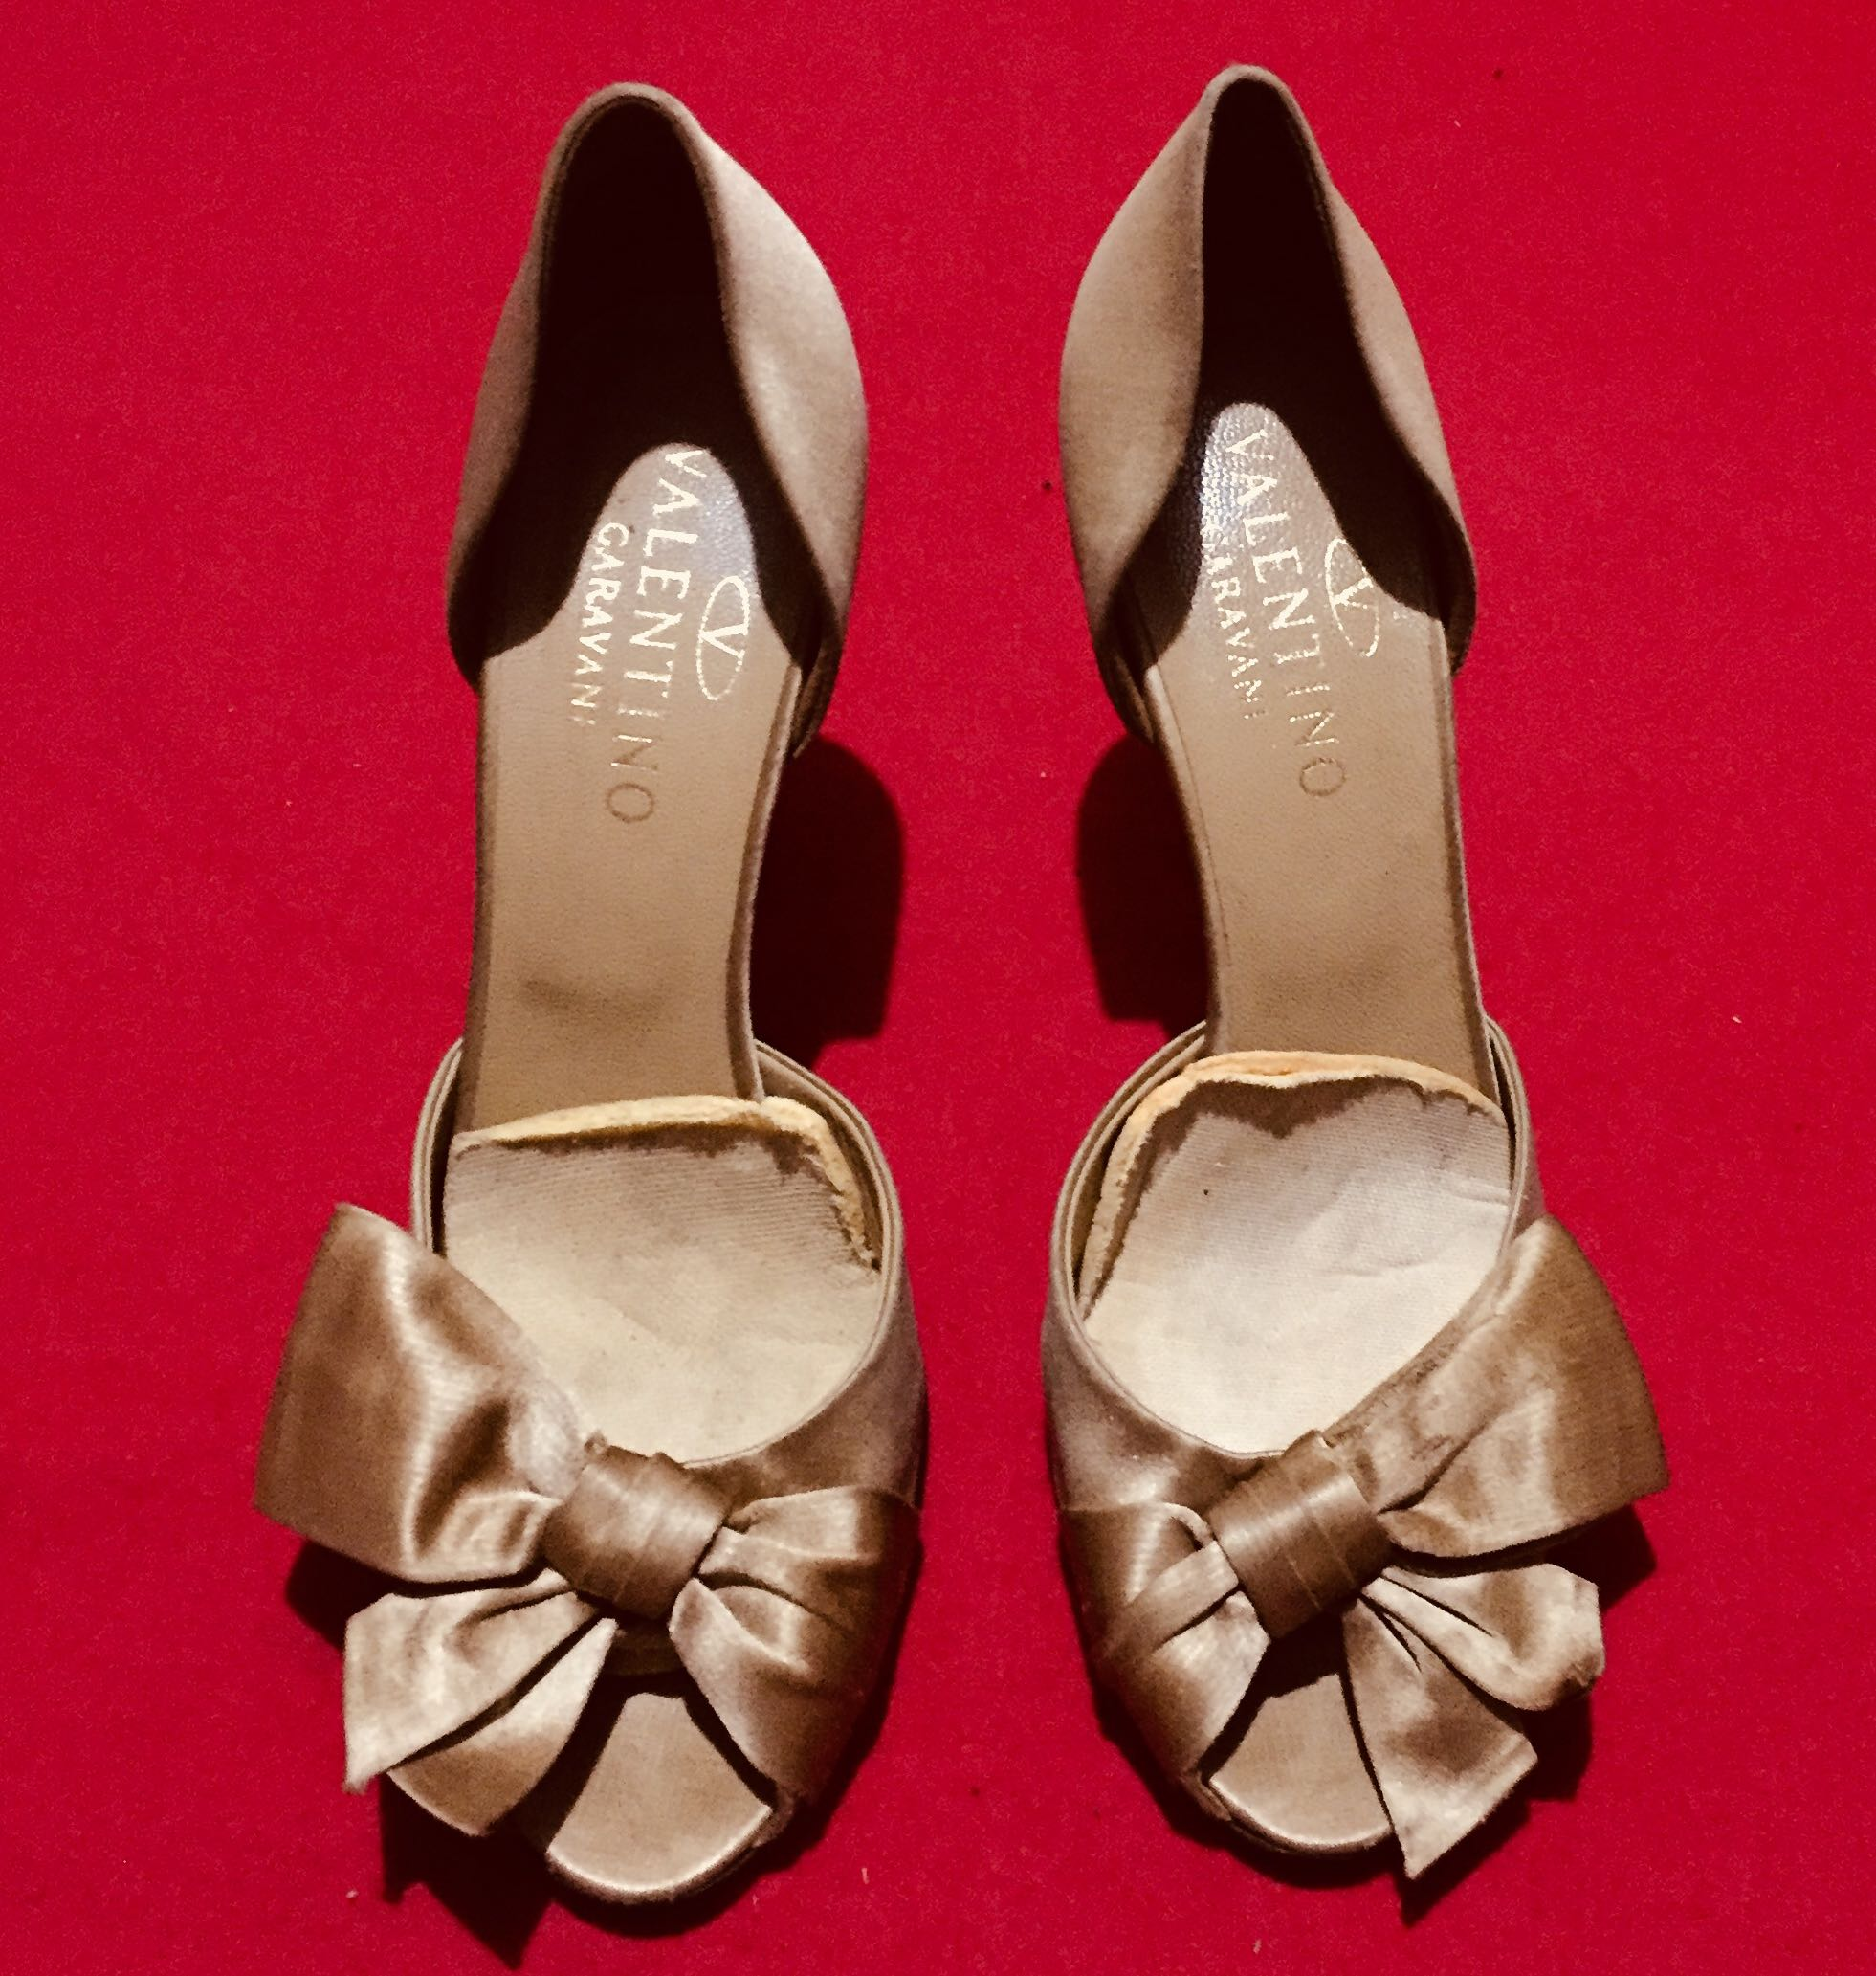 396163f80e5 Authentic Valentino Bow Heels Sandals